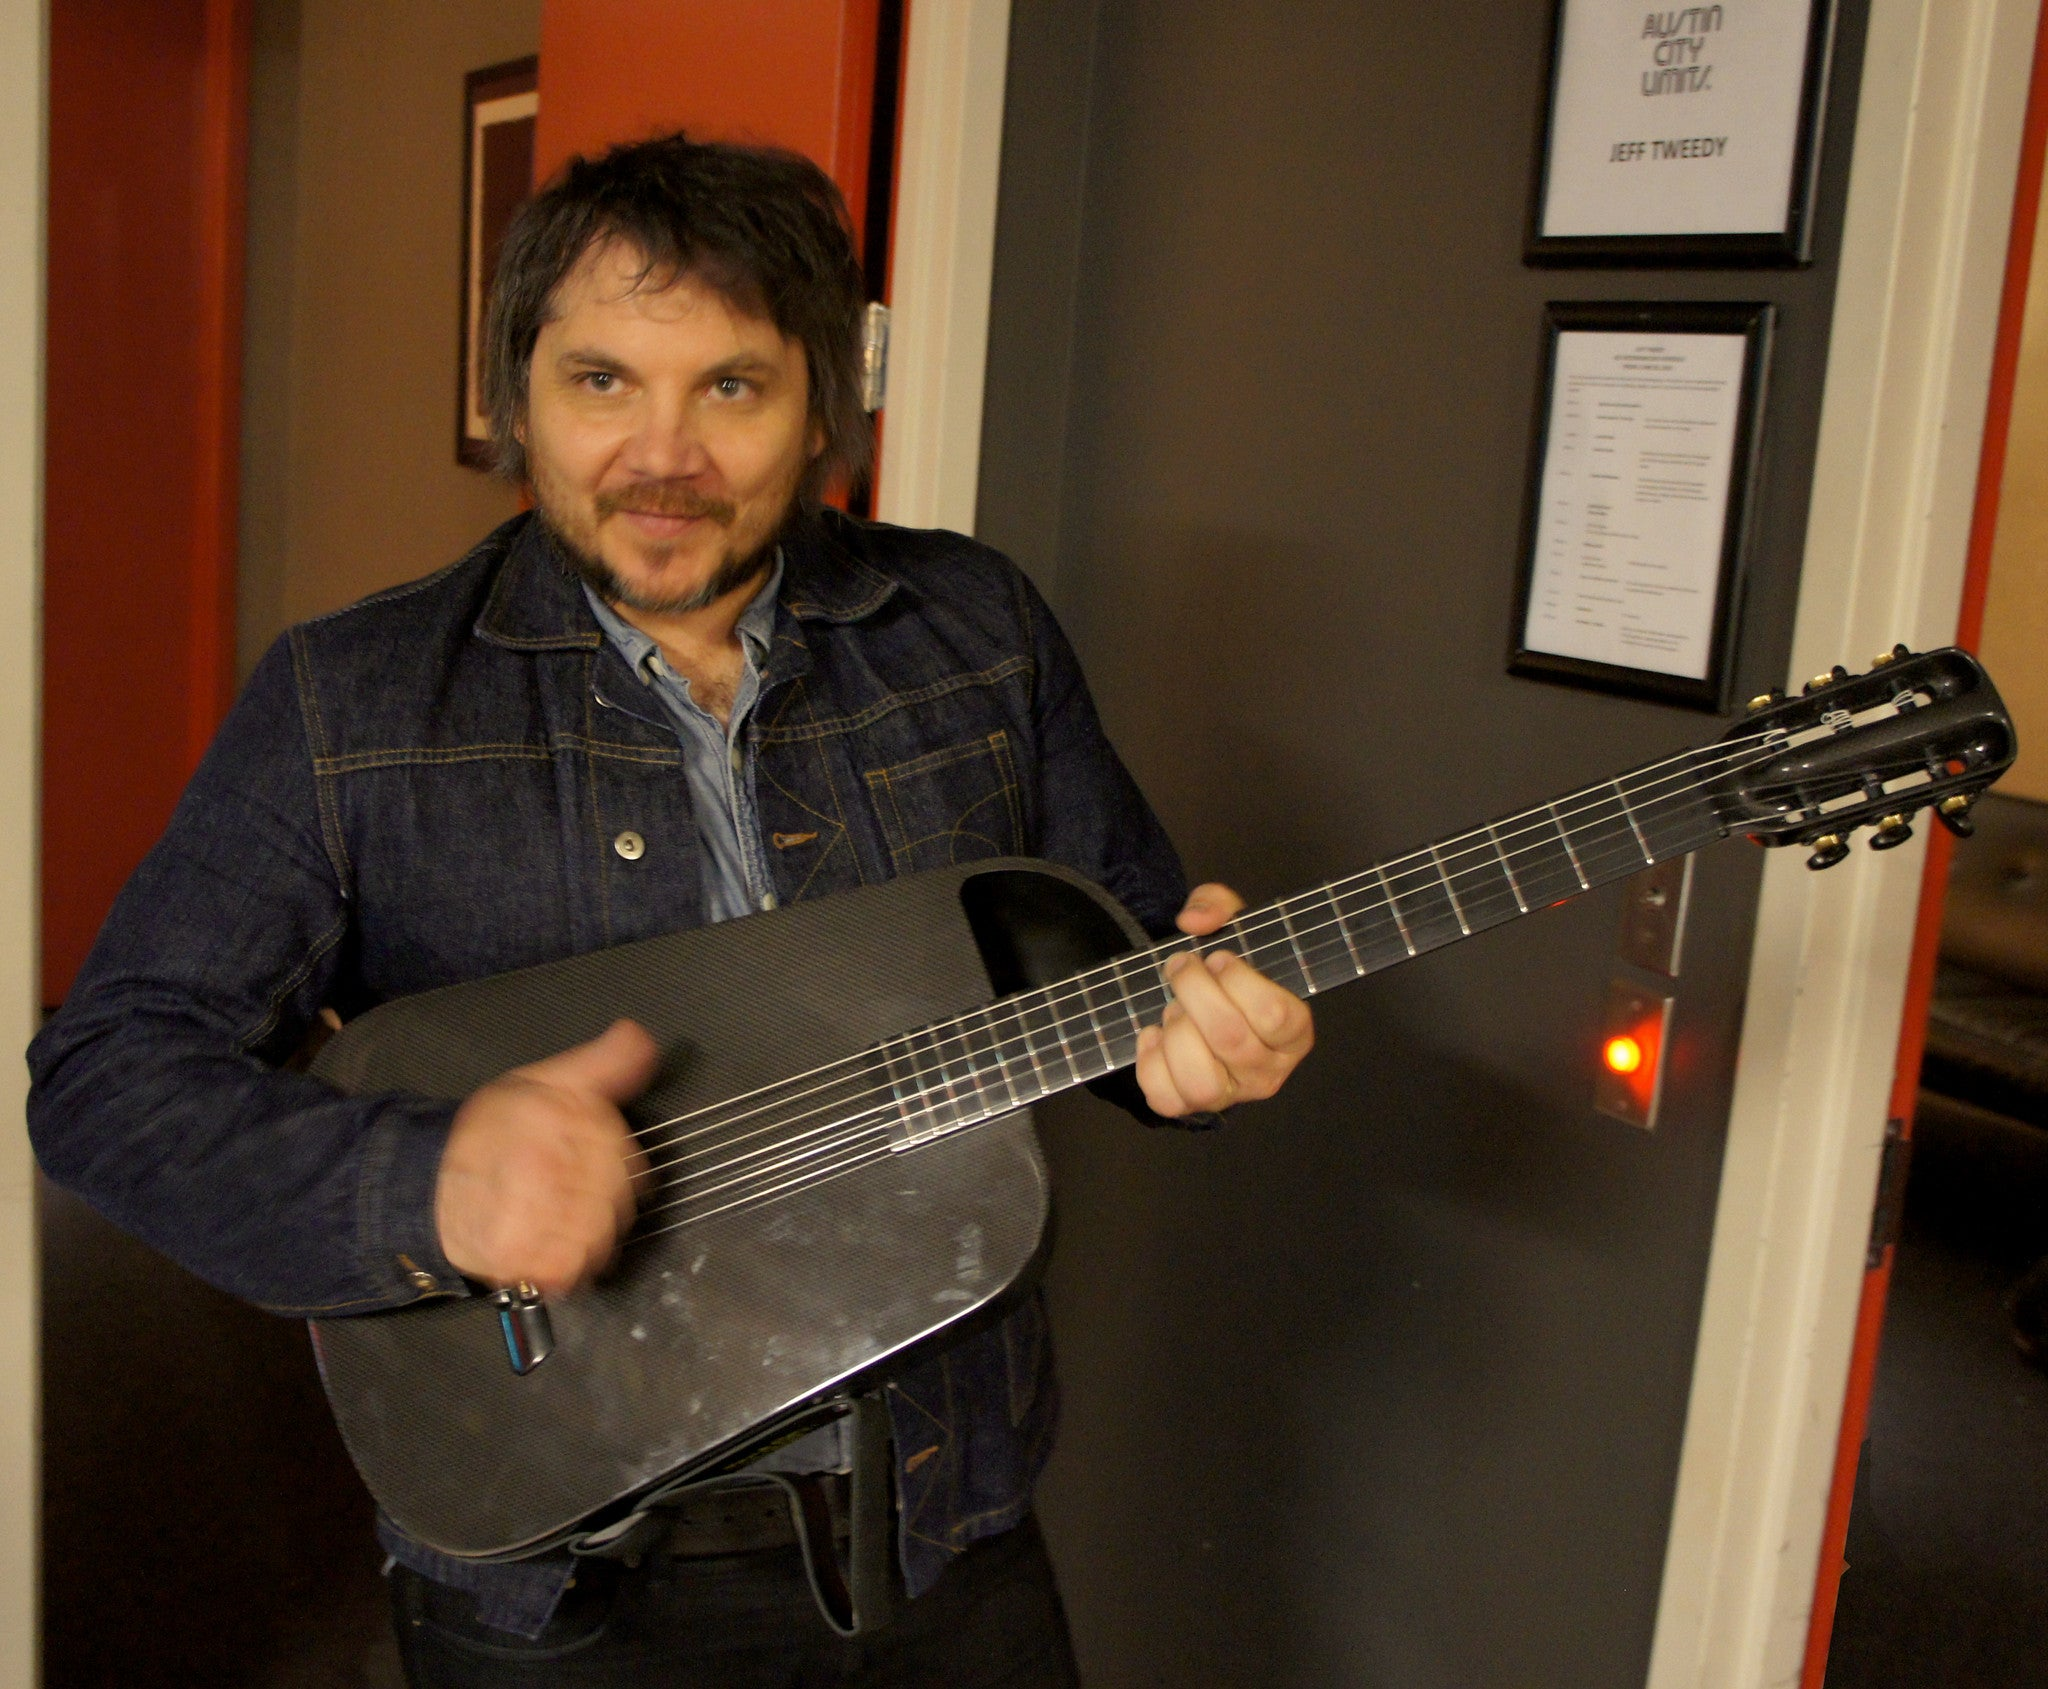 Jeff Tweedy Gets A Blackbird Rider!